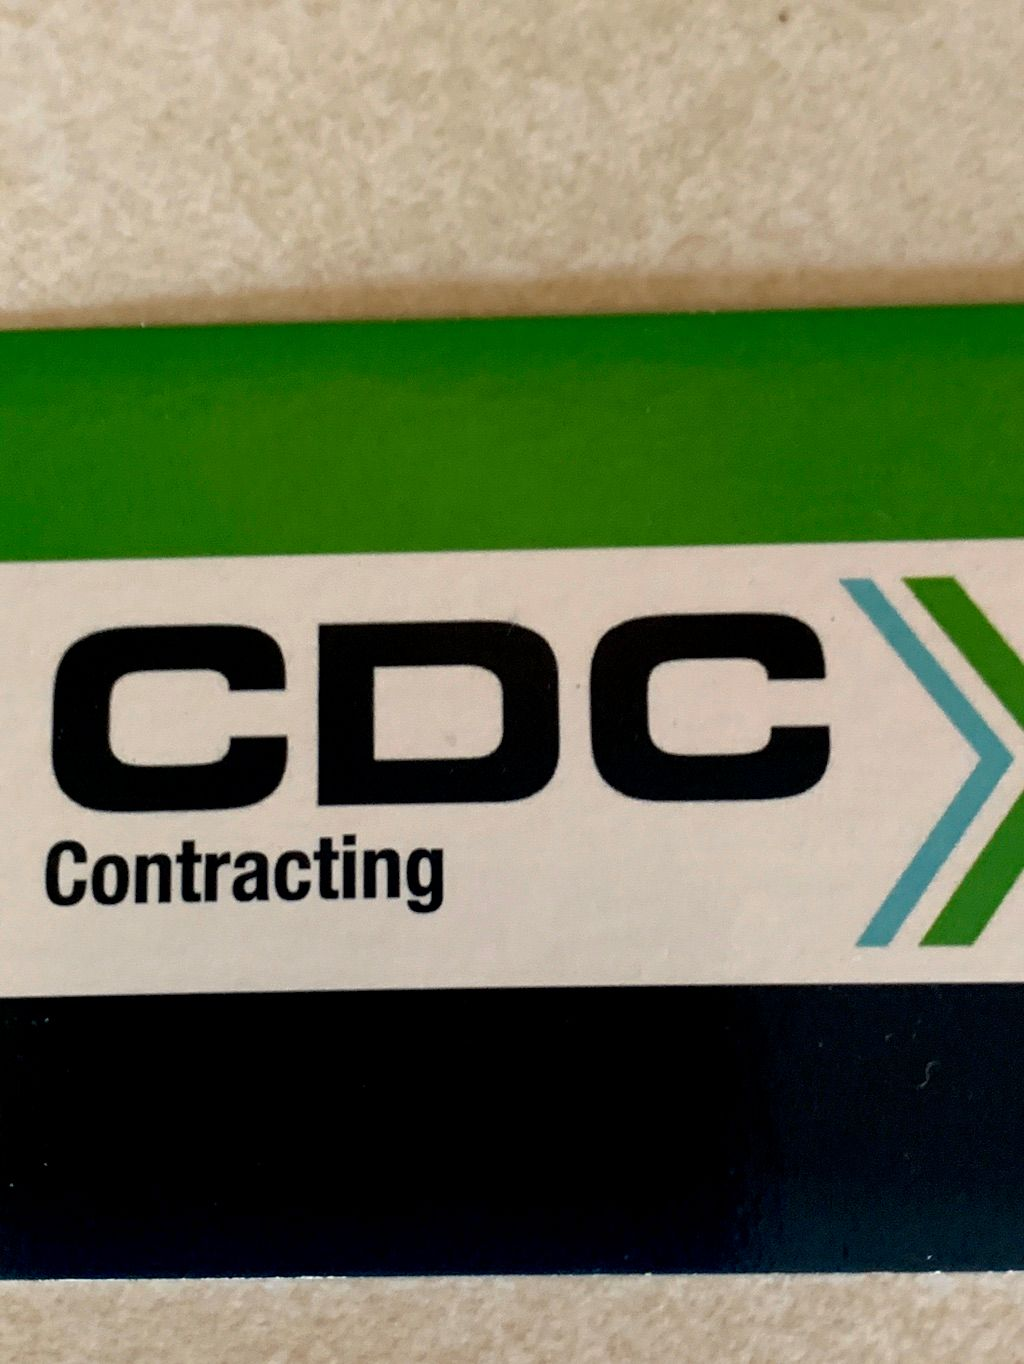 CDC Contracting